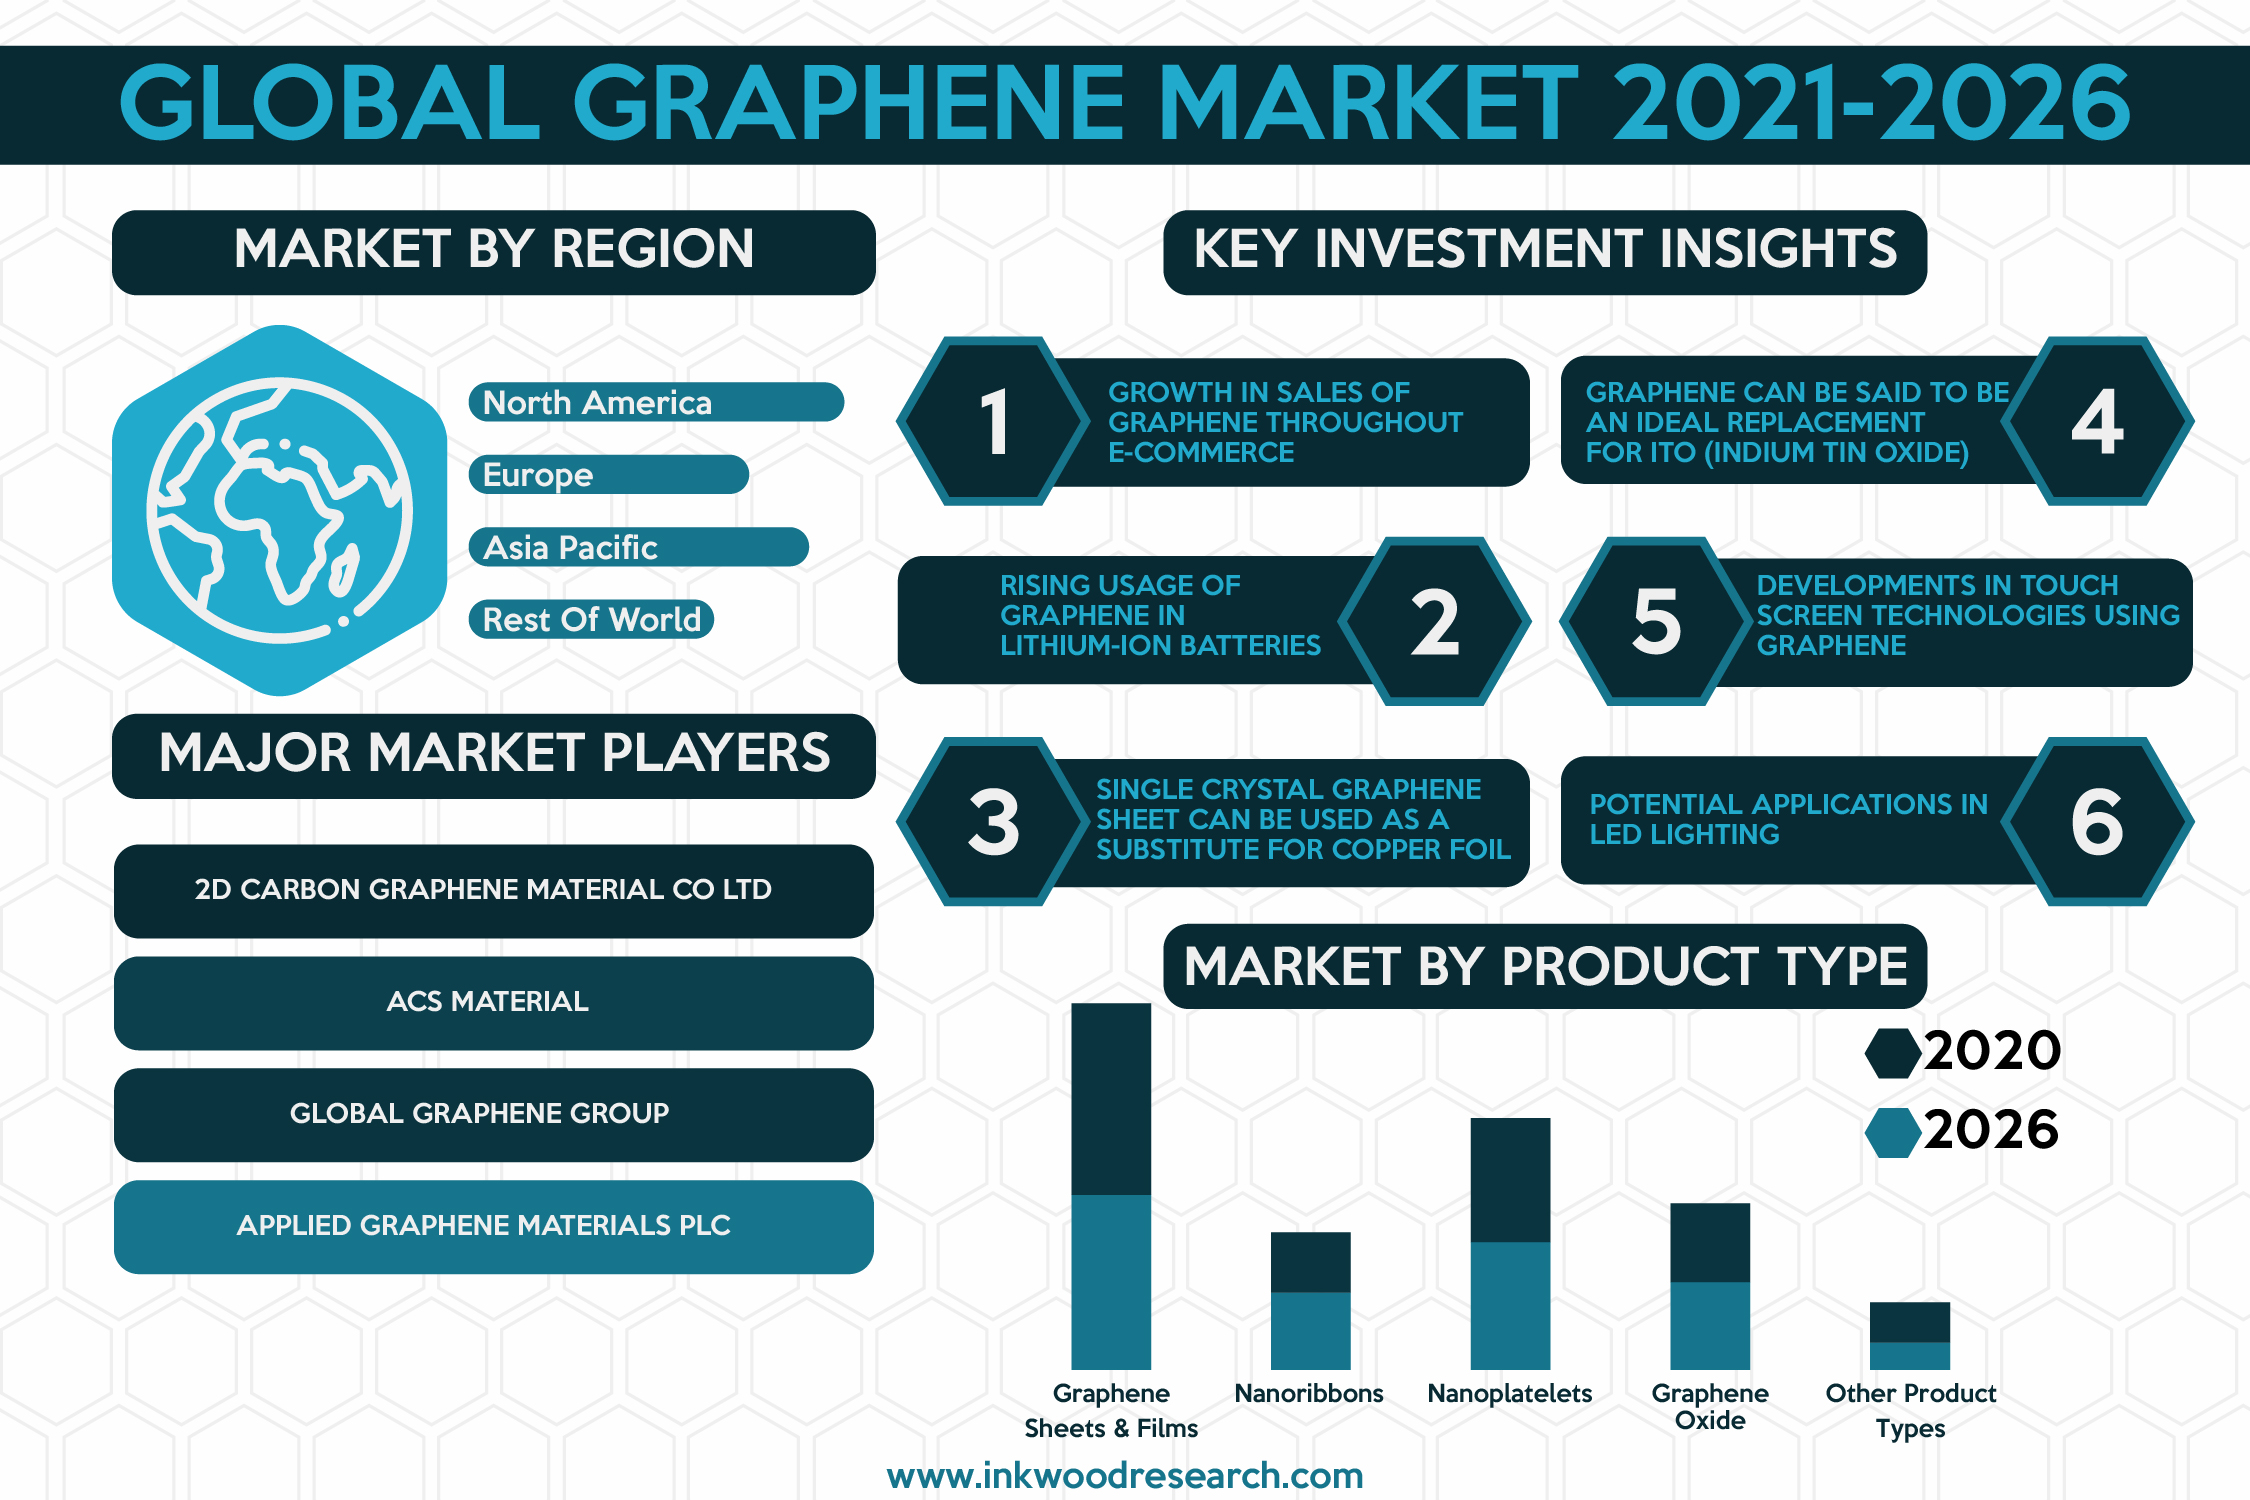 Rise in Funding to encourage Growth in the Global Graphene Market